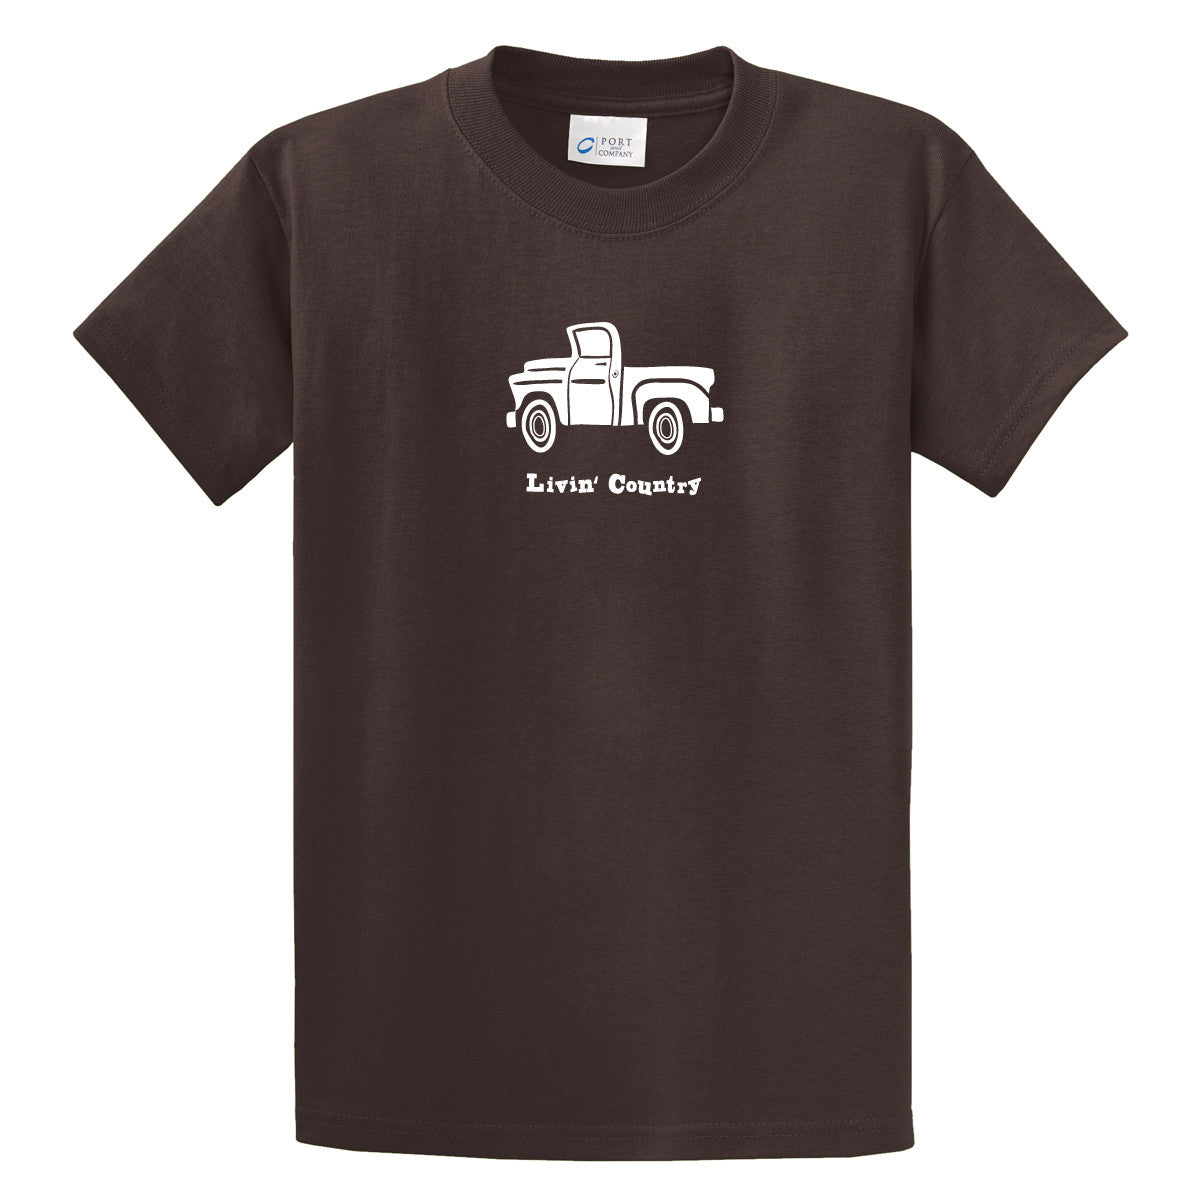 Adult Livin' Country Truck T-shirt - Livin' Country Apparel & Accessories  - 1